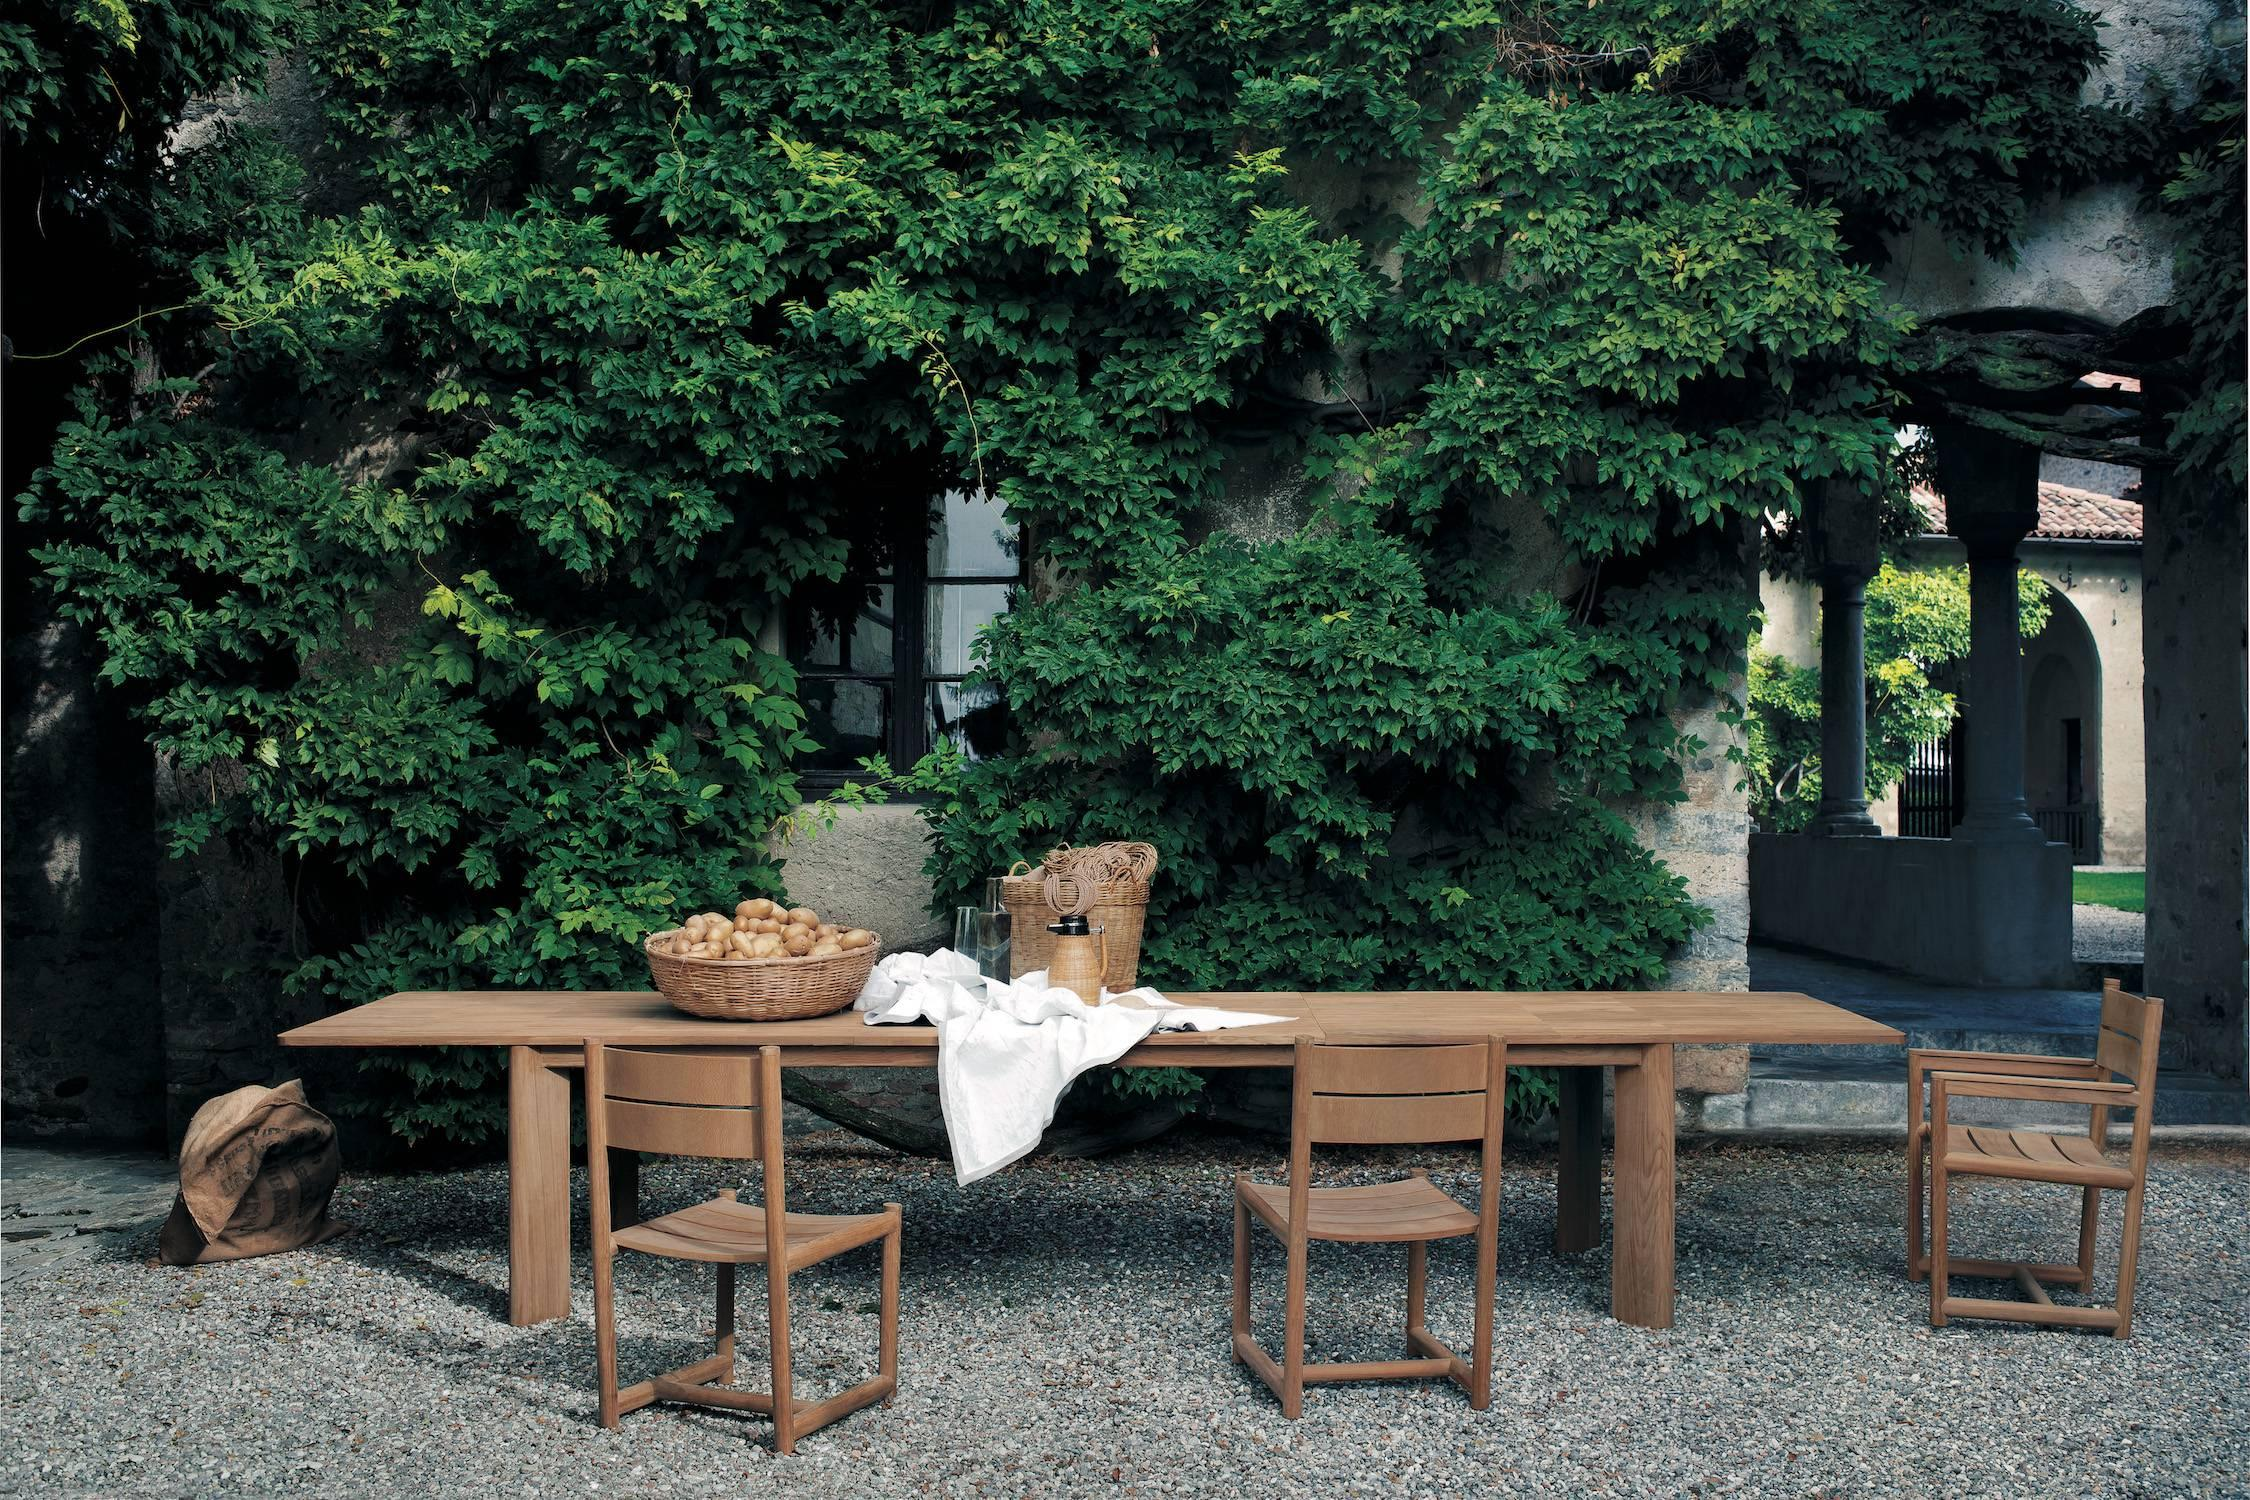 Charmant Roda Brick Extendable Dining Table In Teak For Outdoors For Sale At 1stdibs